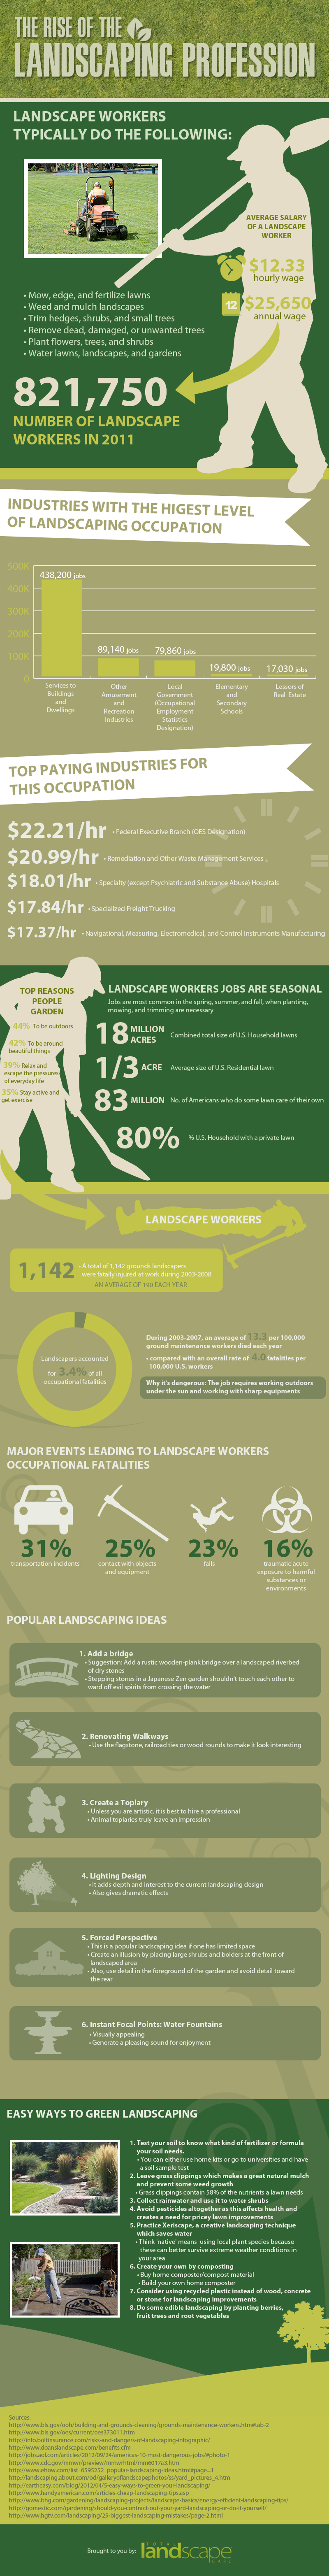 The Rise of the Landscaping Profession